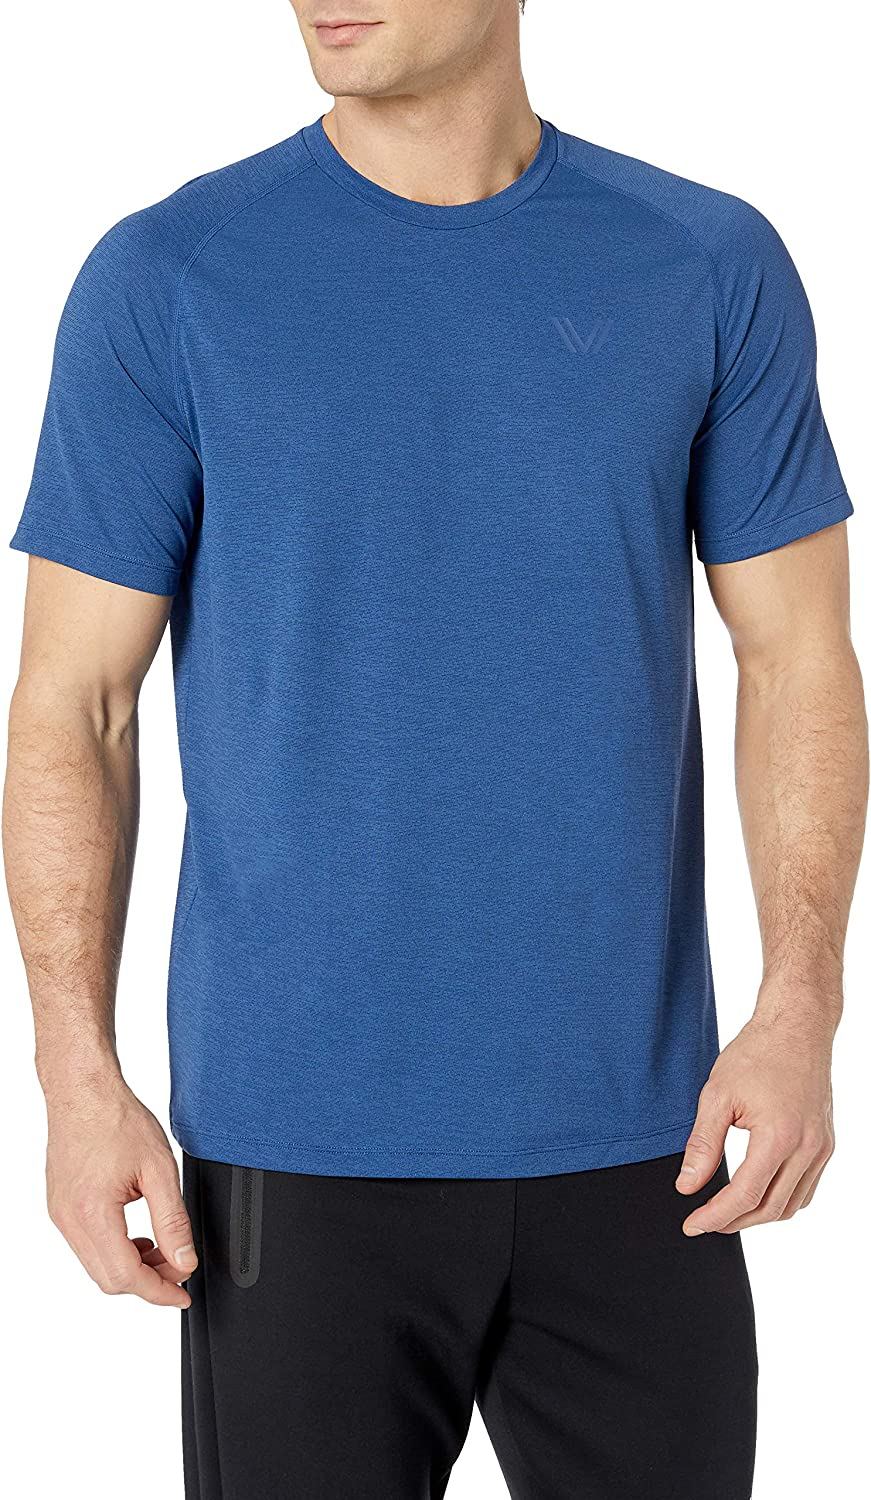 Top 7 Electric Cooling Shirts For Men